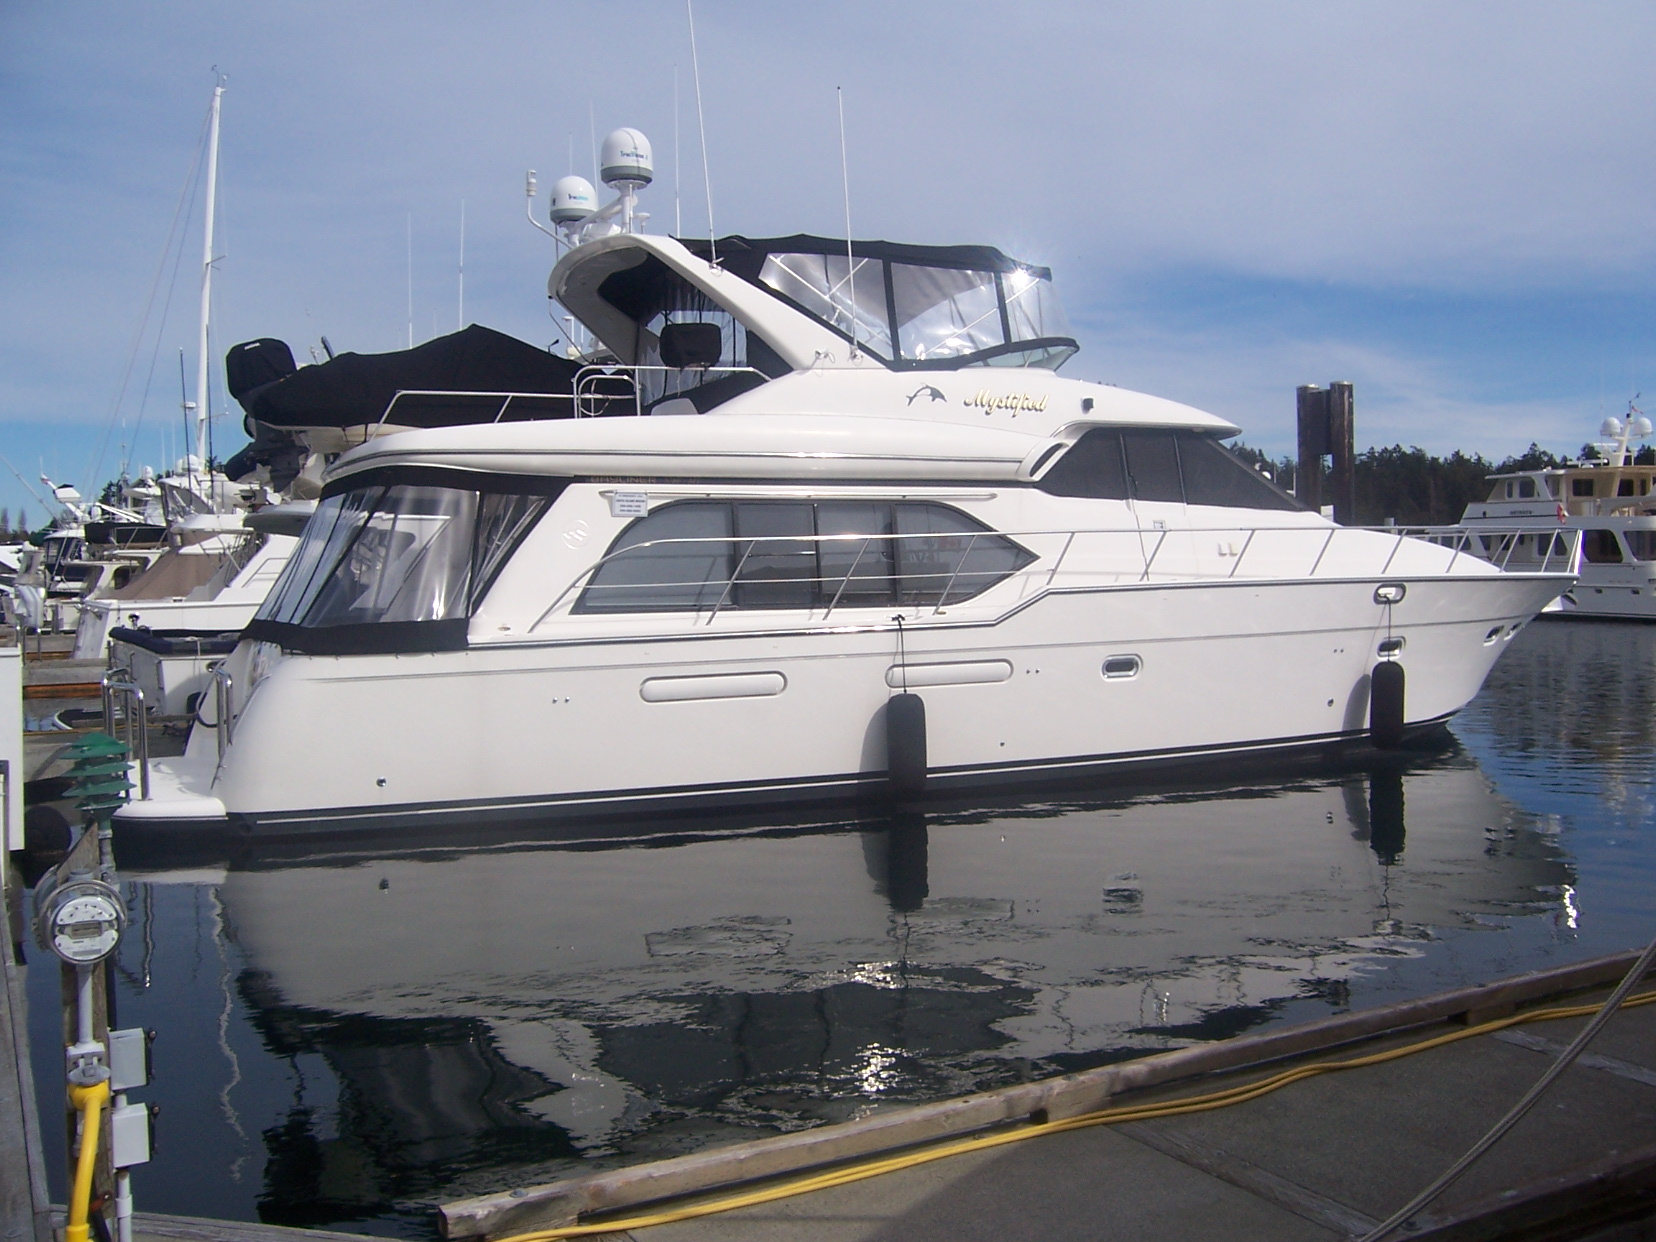 """... completed the sale of a 57' 5788 Bayliner Pilothouse 1999 """"Mystified""""."""